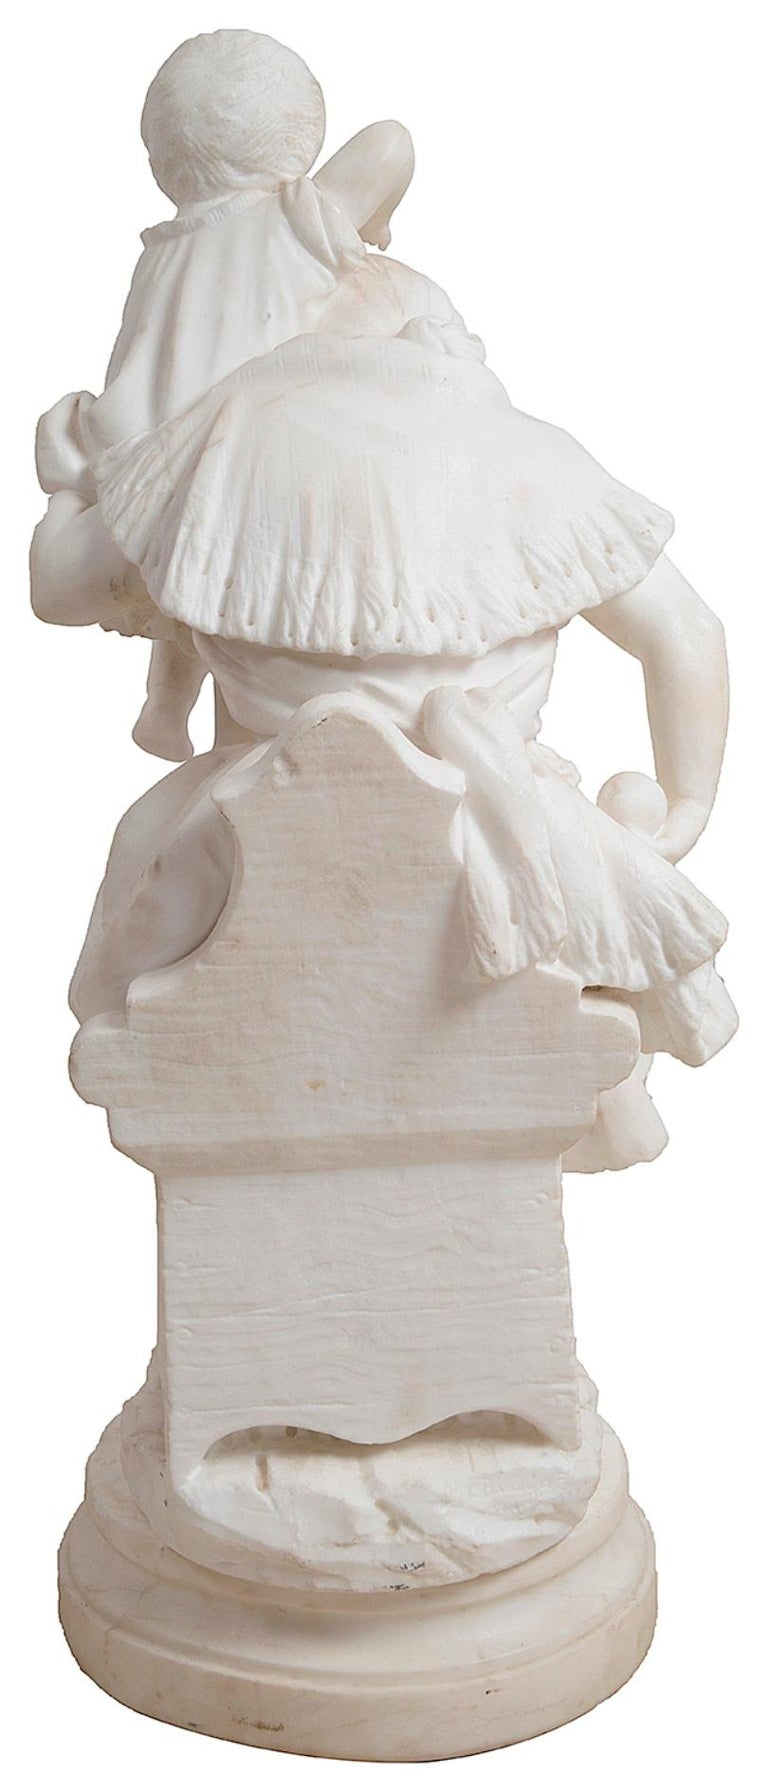 Carrara Marble 19th Century Marble Statue of Mother and Child For Sale